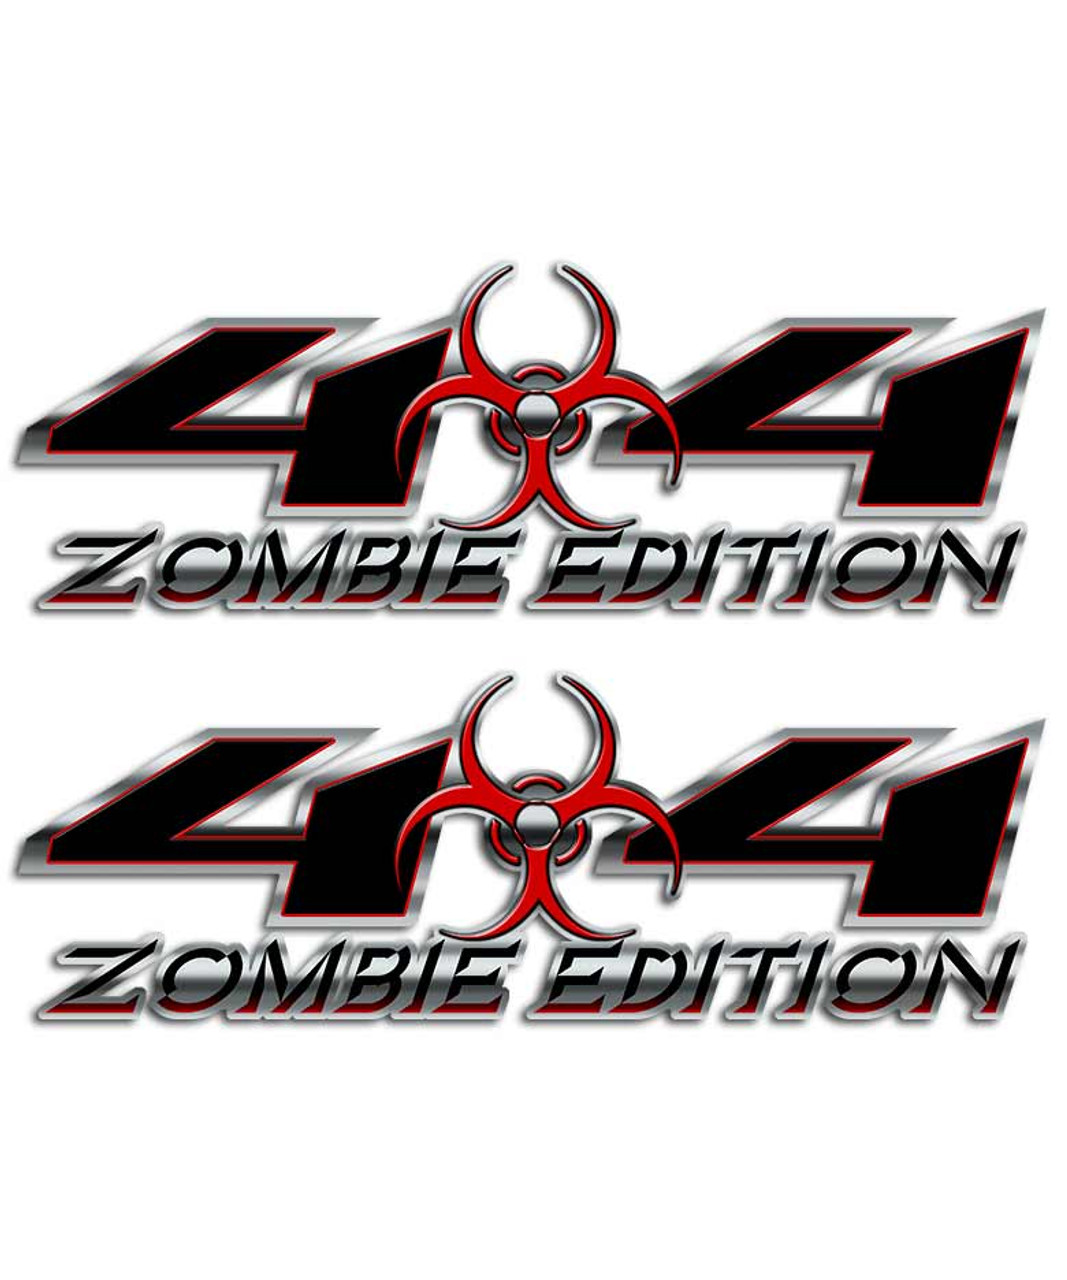 Zombie 4x4 biohazard sticker set